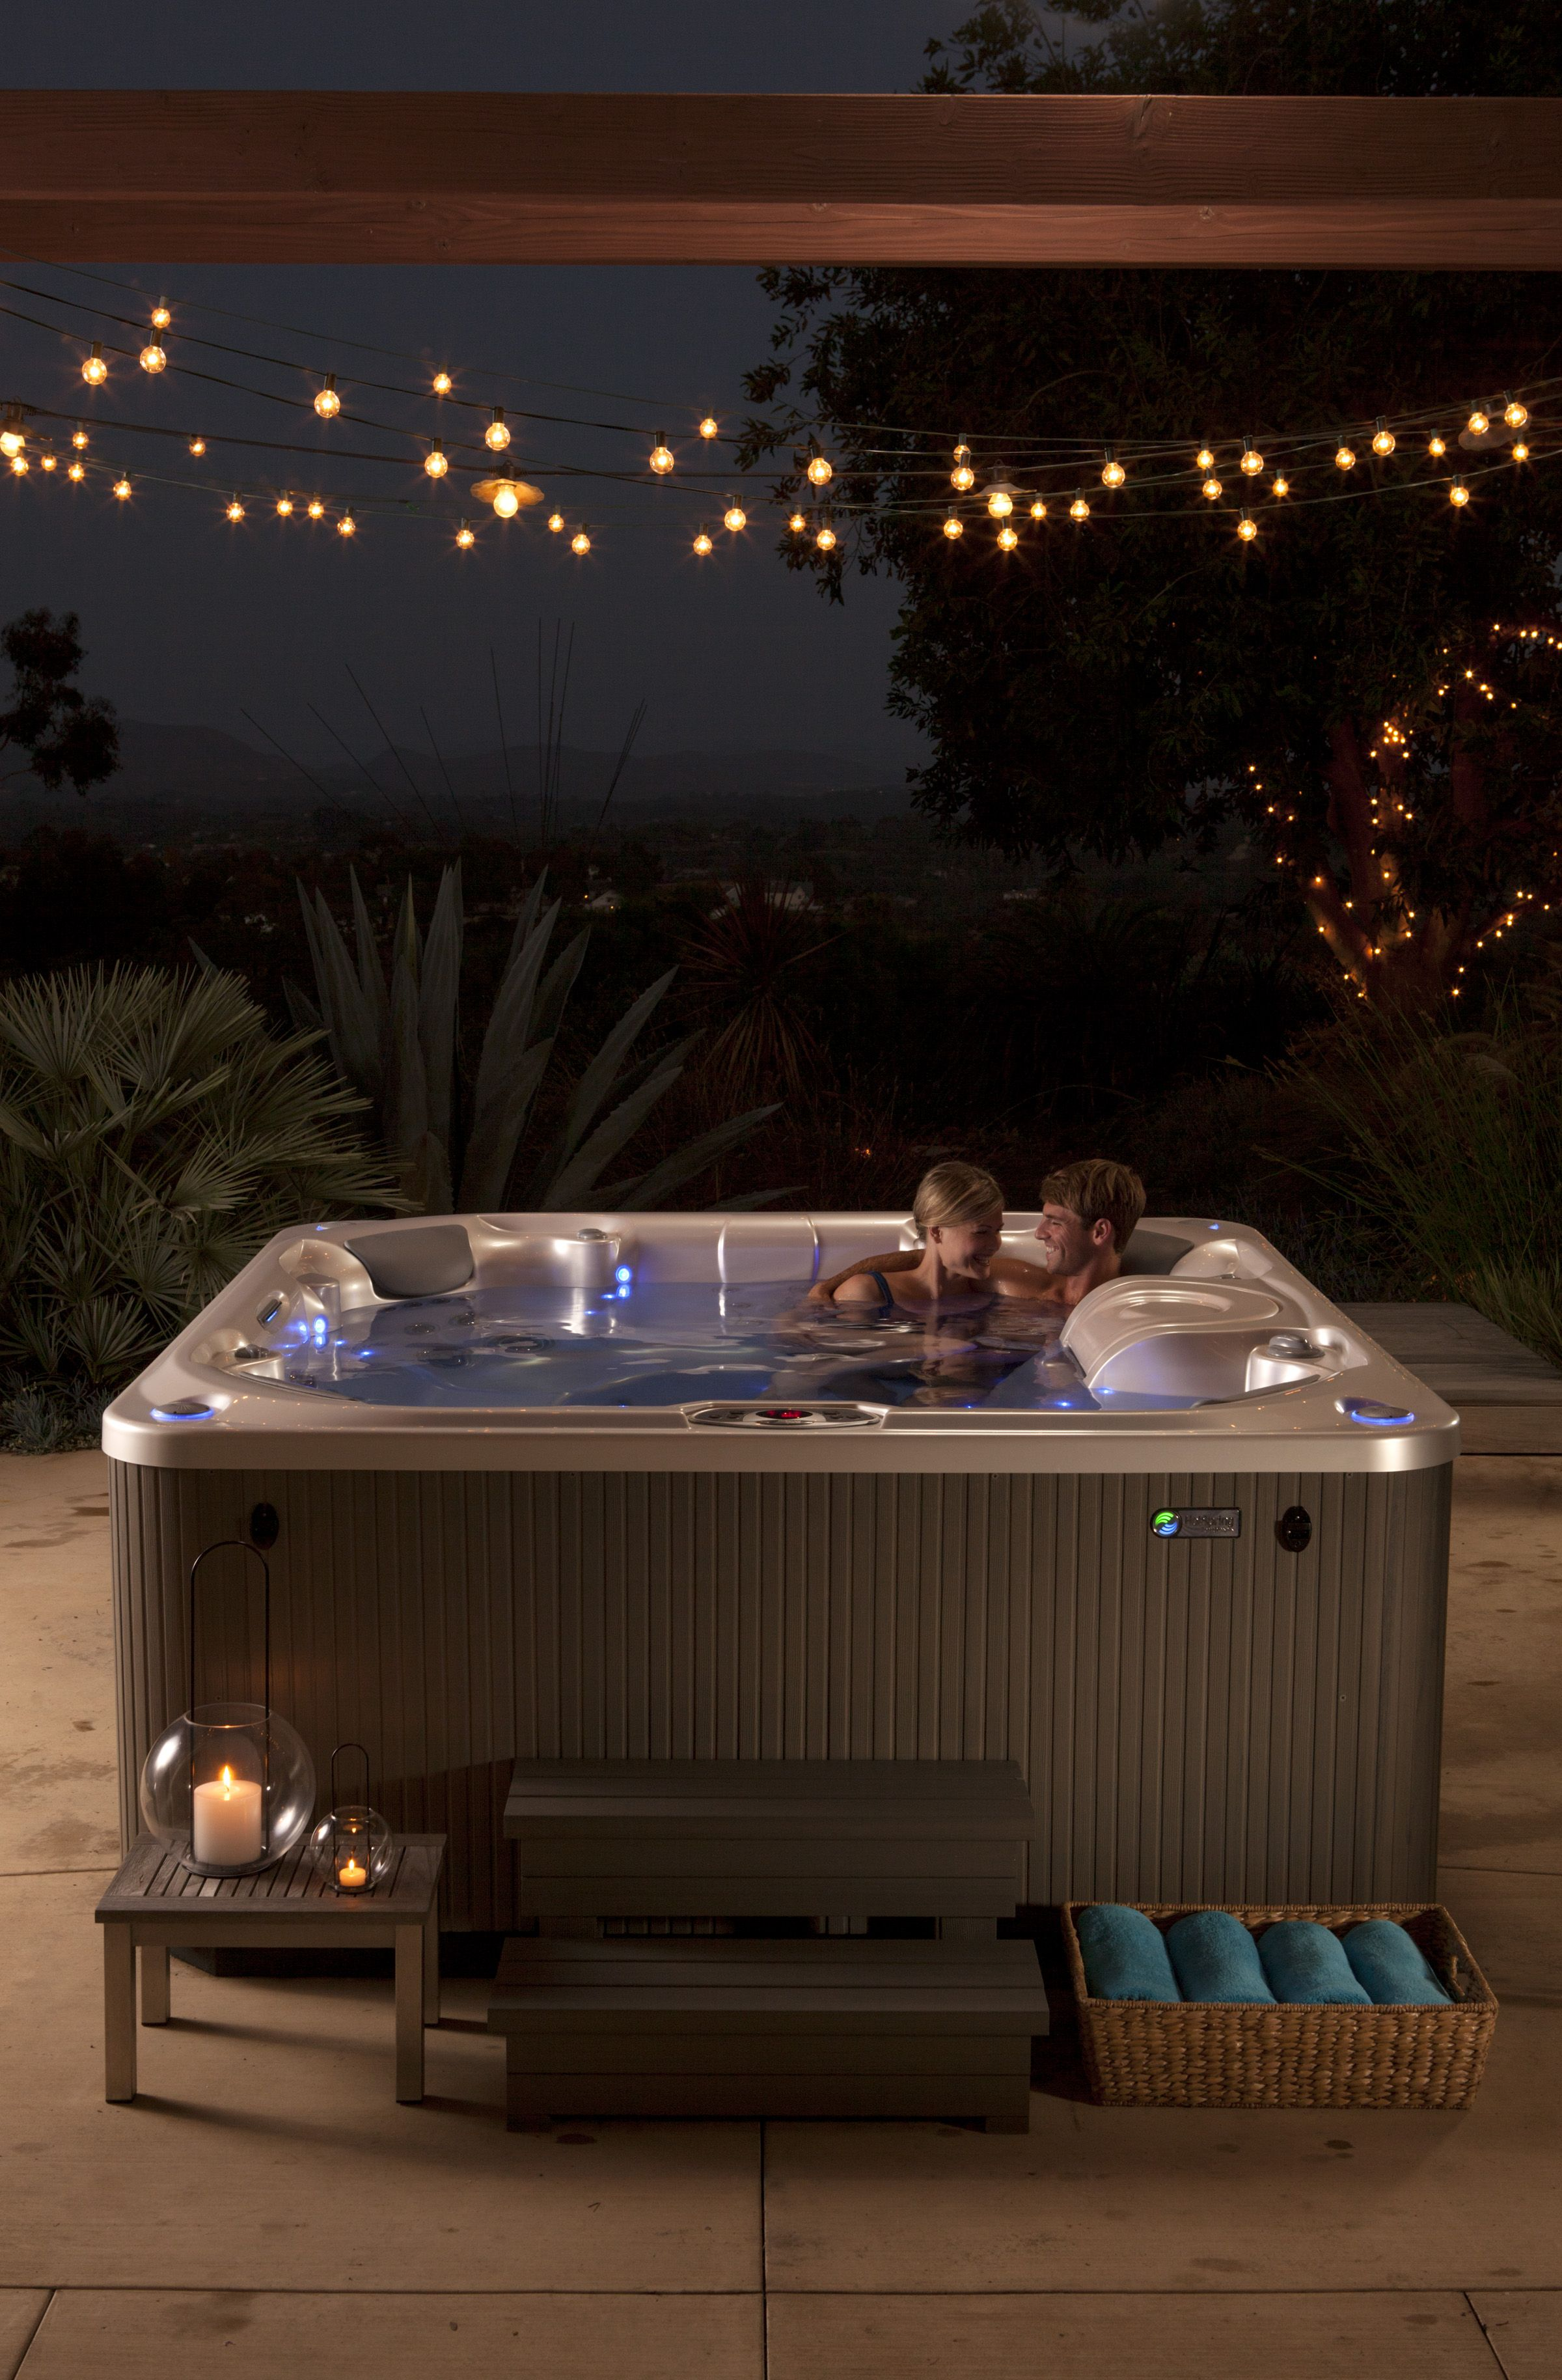 Patio Hot Tub Ideas Backyard Hardscape Hot Tub Designs Hot Spring Spas Hot Tub Backyard Hot Tub Outdoor Hot Tub Designs